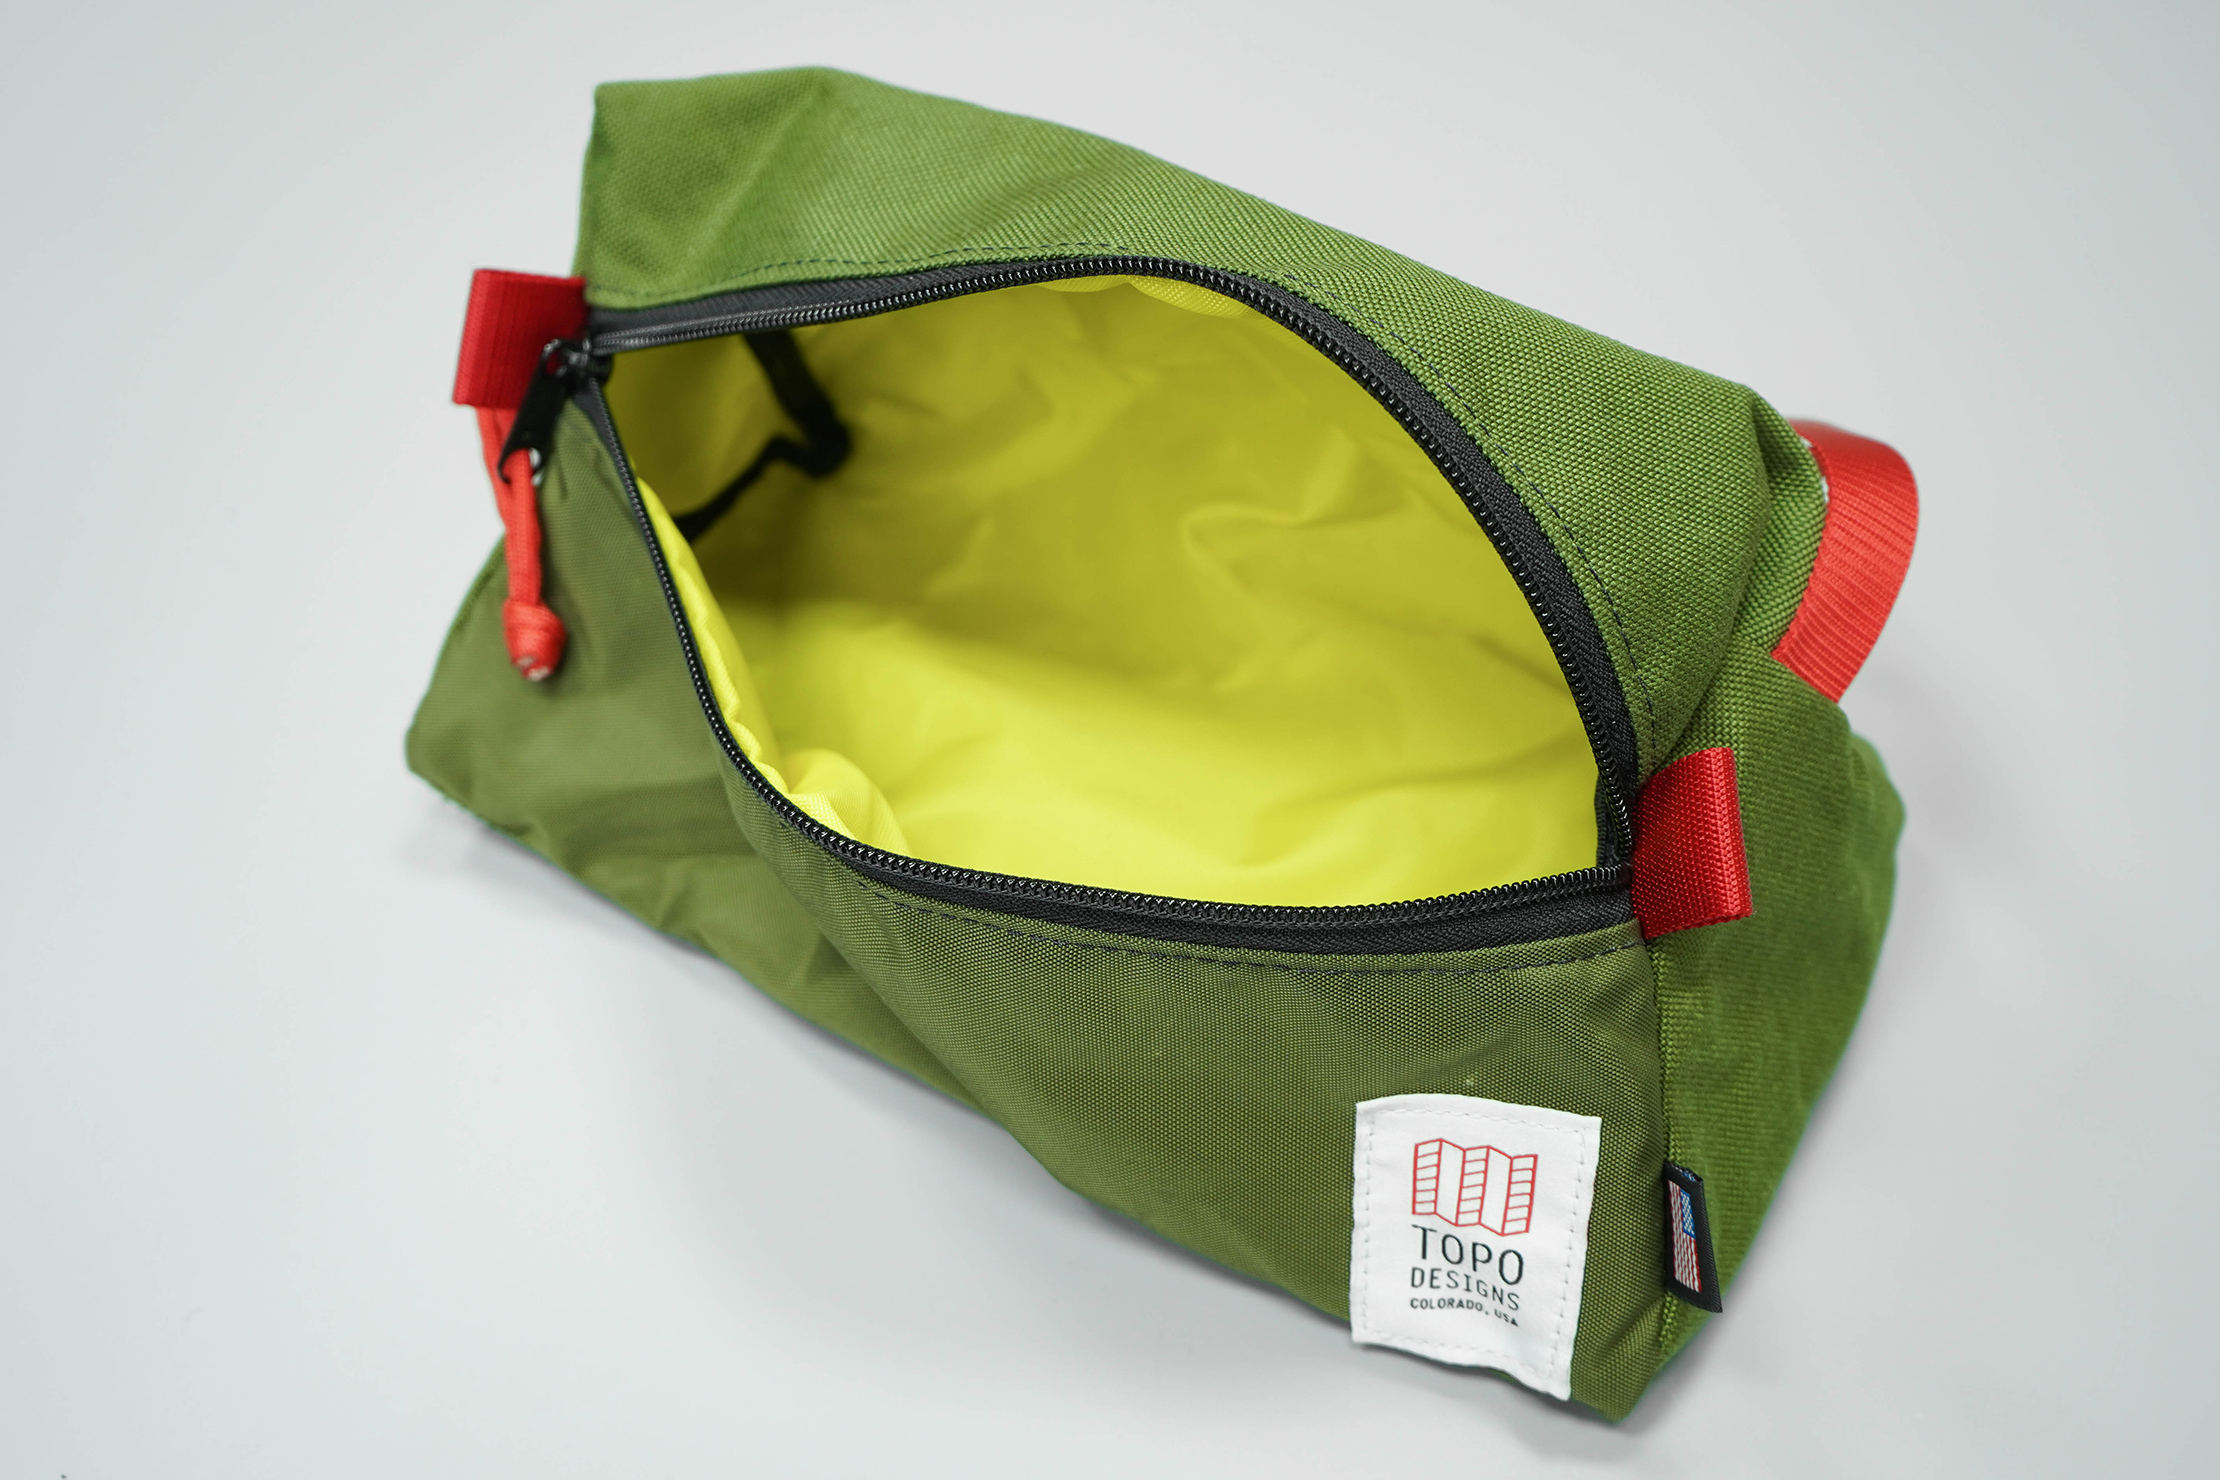 Topo Designs Dopp Kit Open